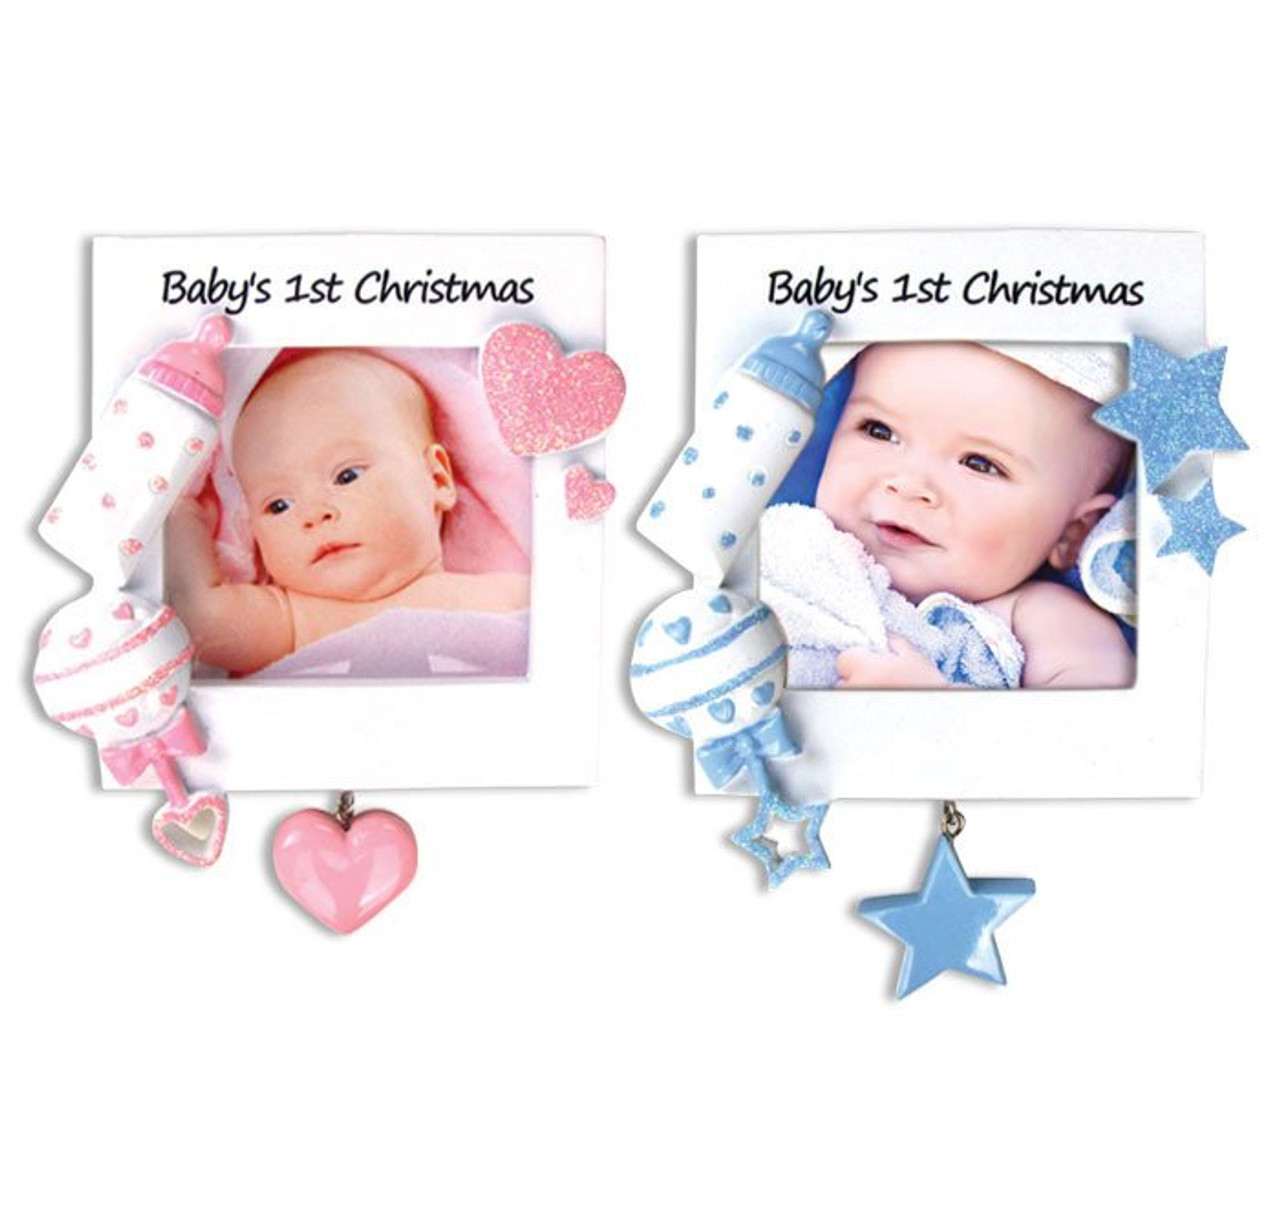 Babys 1st Christmas Photo Frame Personalized Ornaments